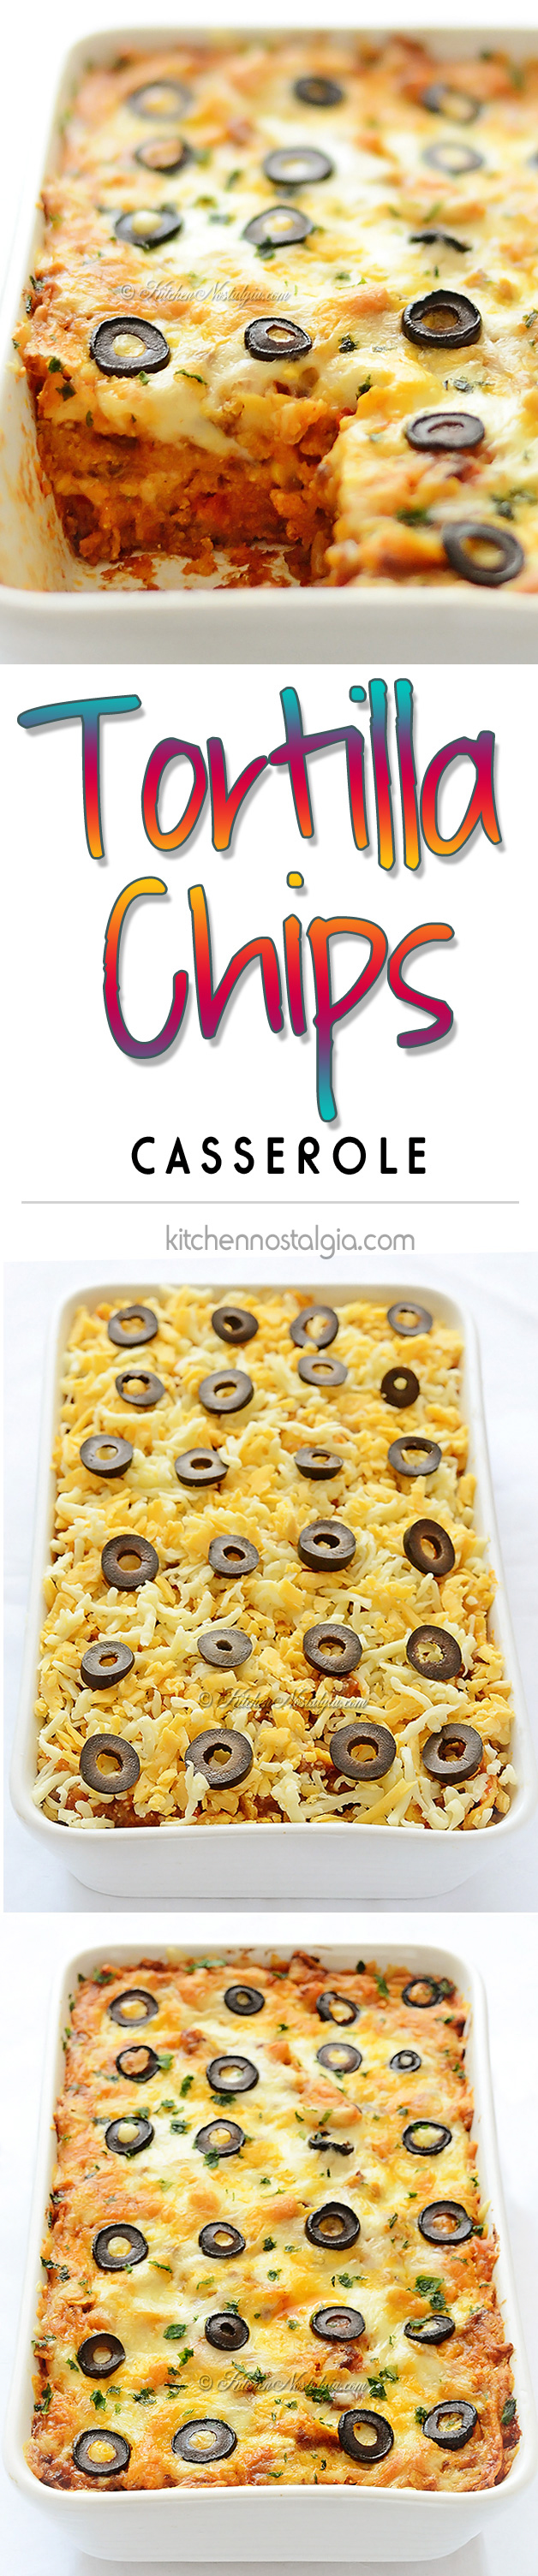 Tortilla Chips Casserole